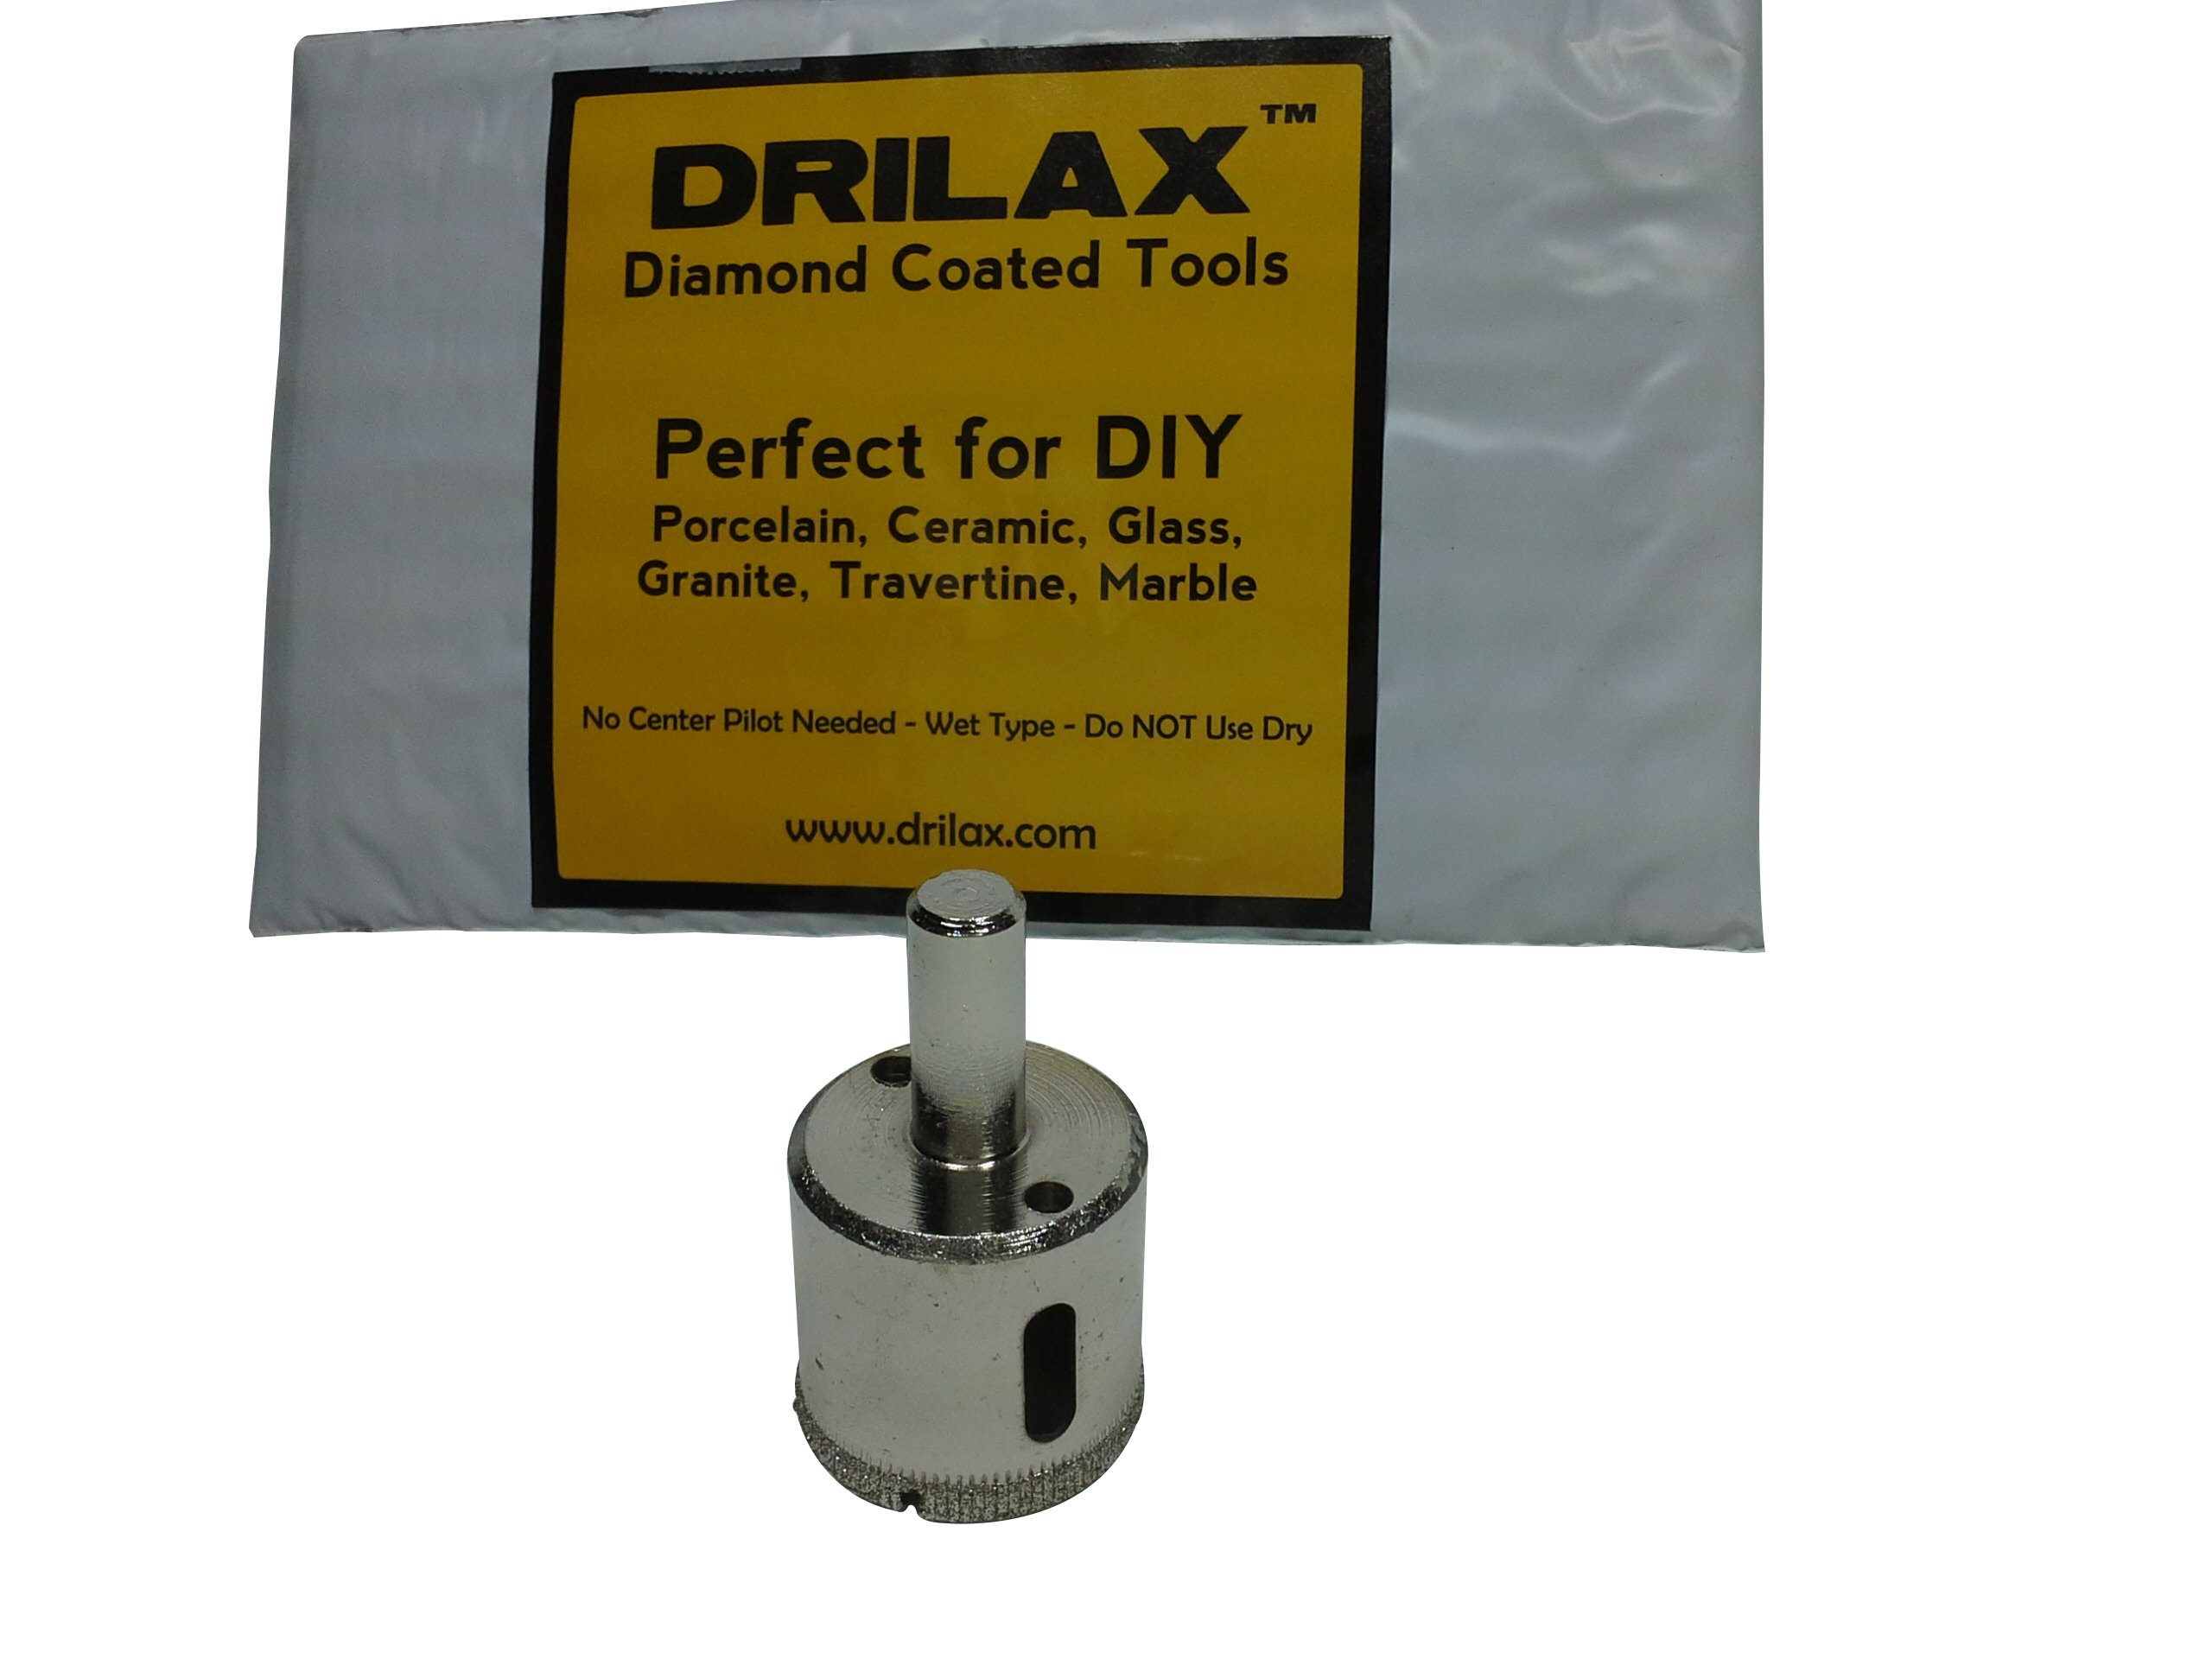 """Drilax 1 3/16 Inch Diamond Hole Saw Drill Bit Tiles, Glass, Fish Tanks, Marble, Granite Countertop, Ceramic, Porcelain, Coated Core Bits Holesaw DIY Kitchen, Bathroom, Shower, Faucet Installation Size 1 3/16"""" Inches"""